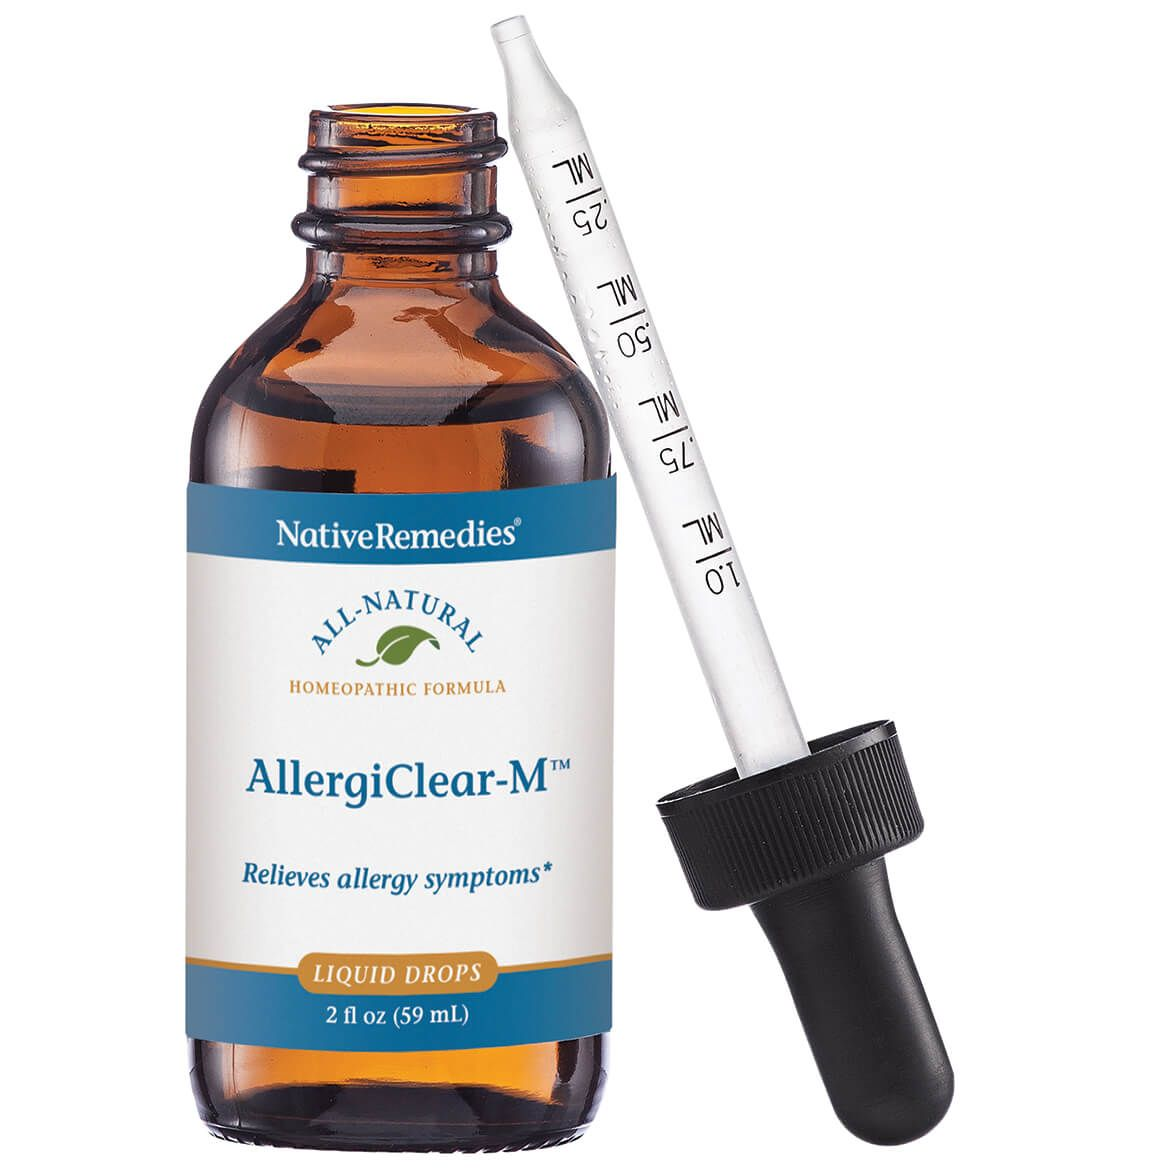 AllergiClear-M™ for Allergy Relief-352532